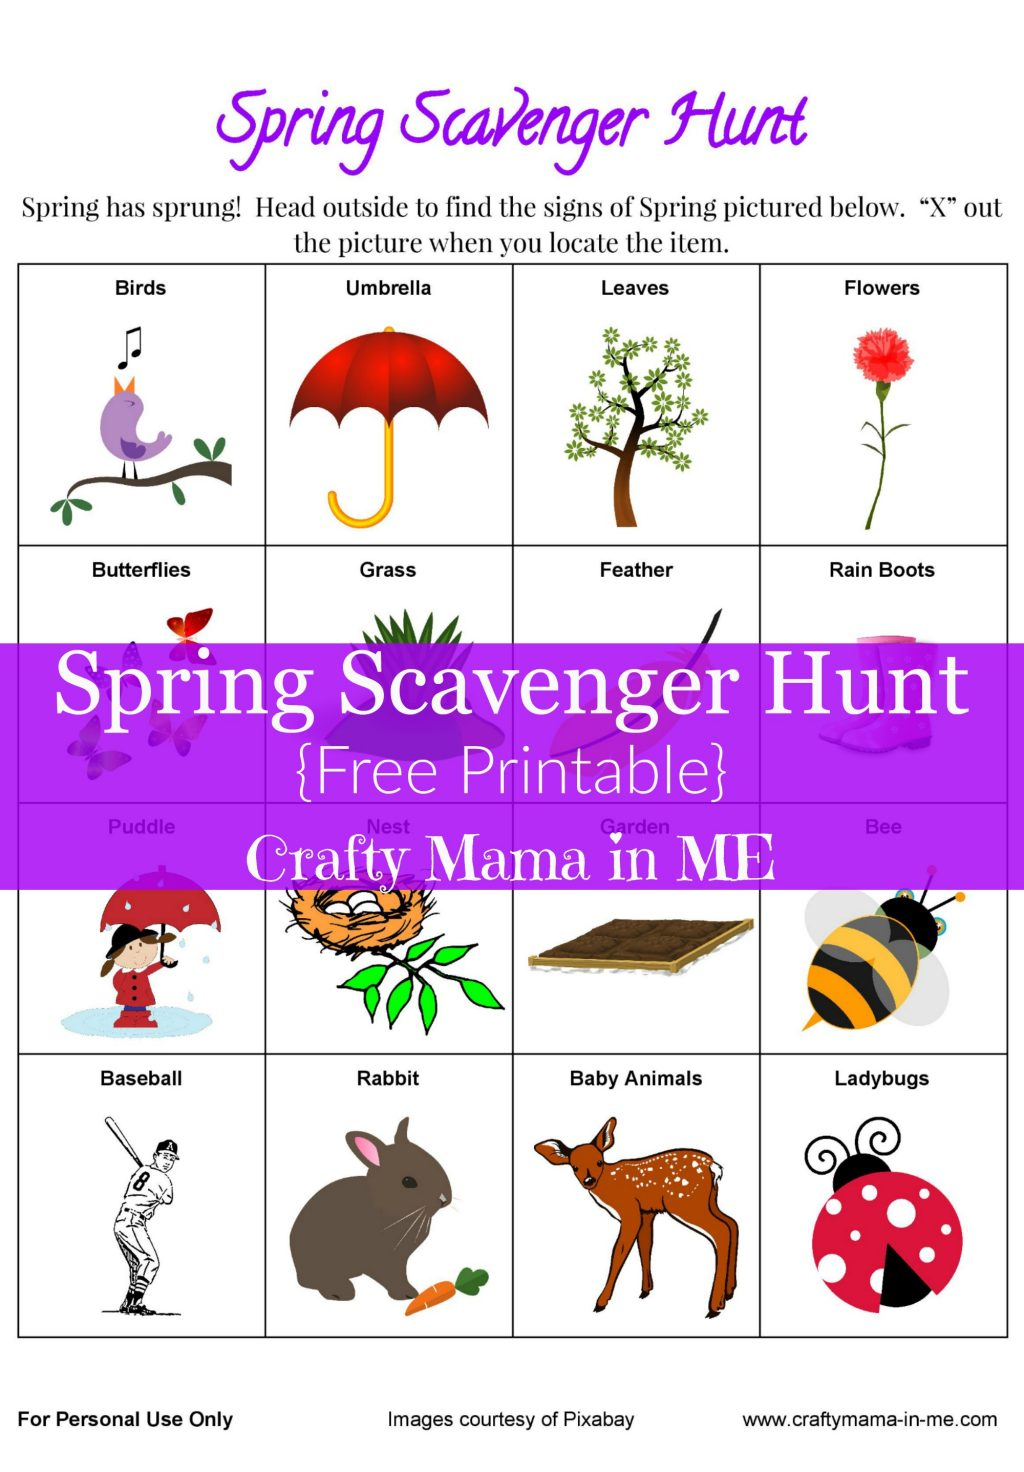 Get Outside With A Spring Scavenger Hunt Free Printable